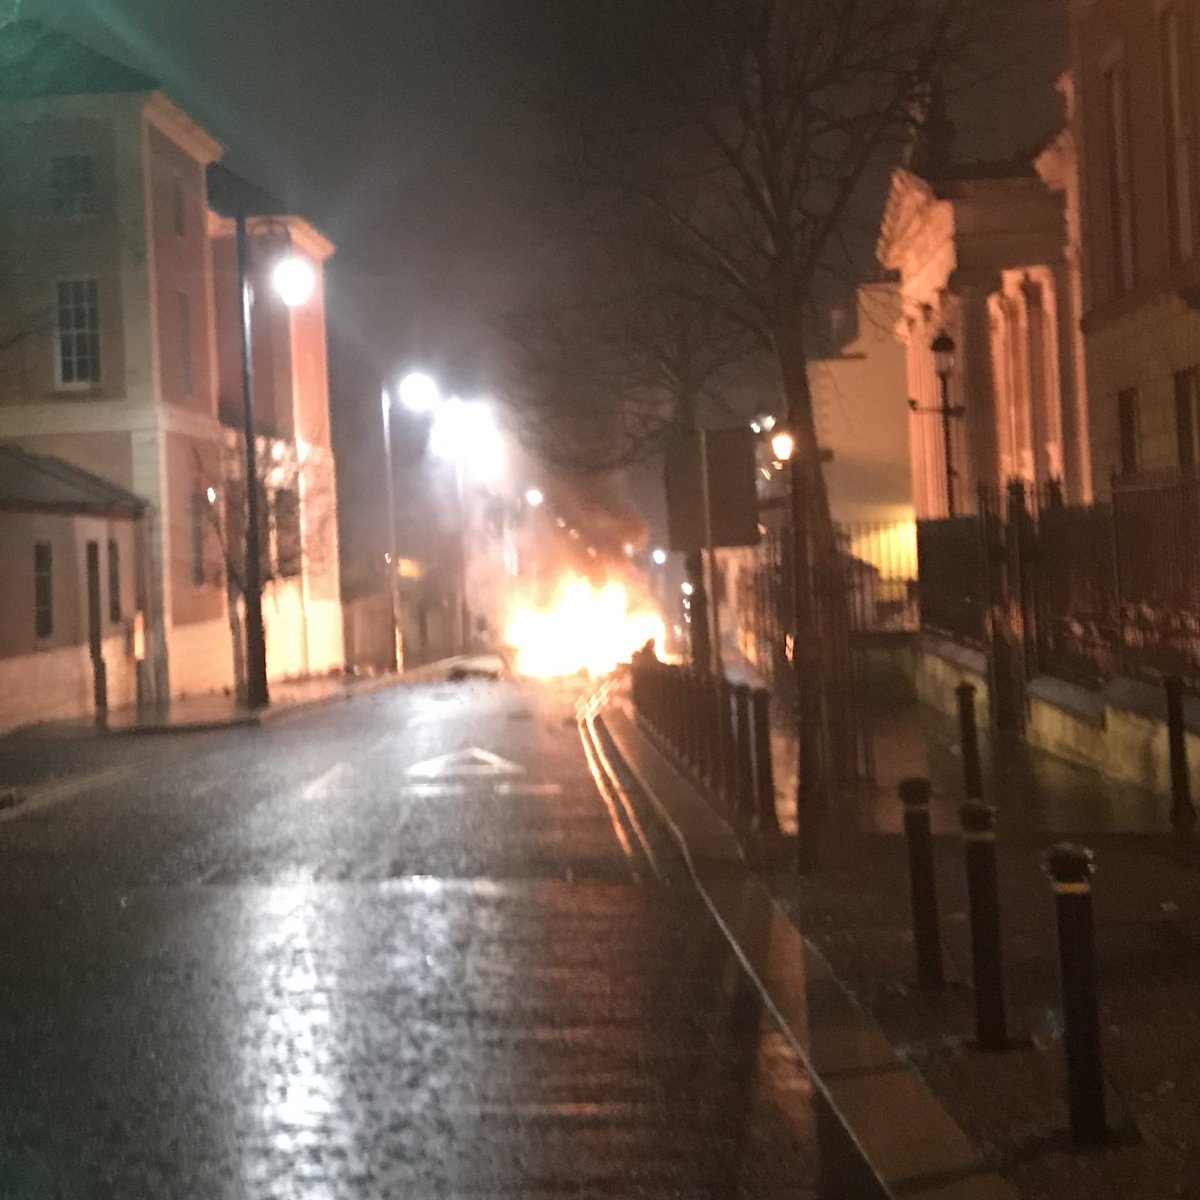 Suspected auto bomb blaze in Derry | Ireland